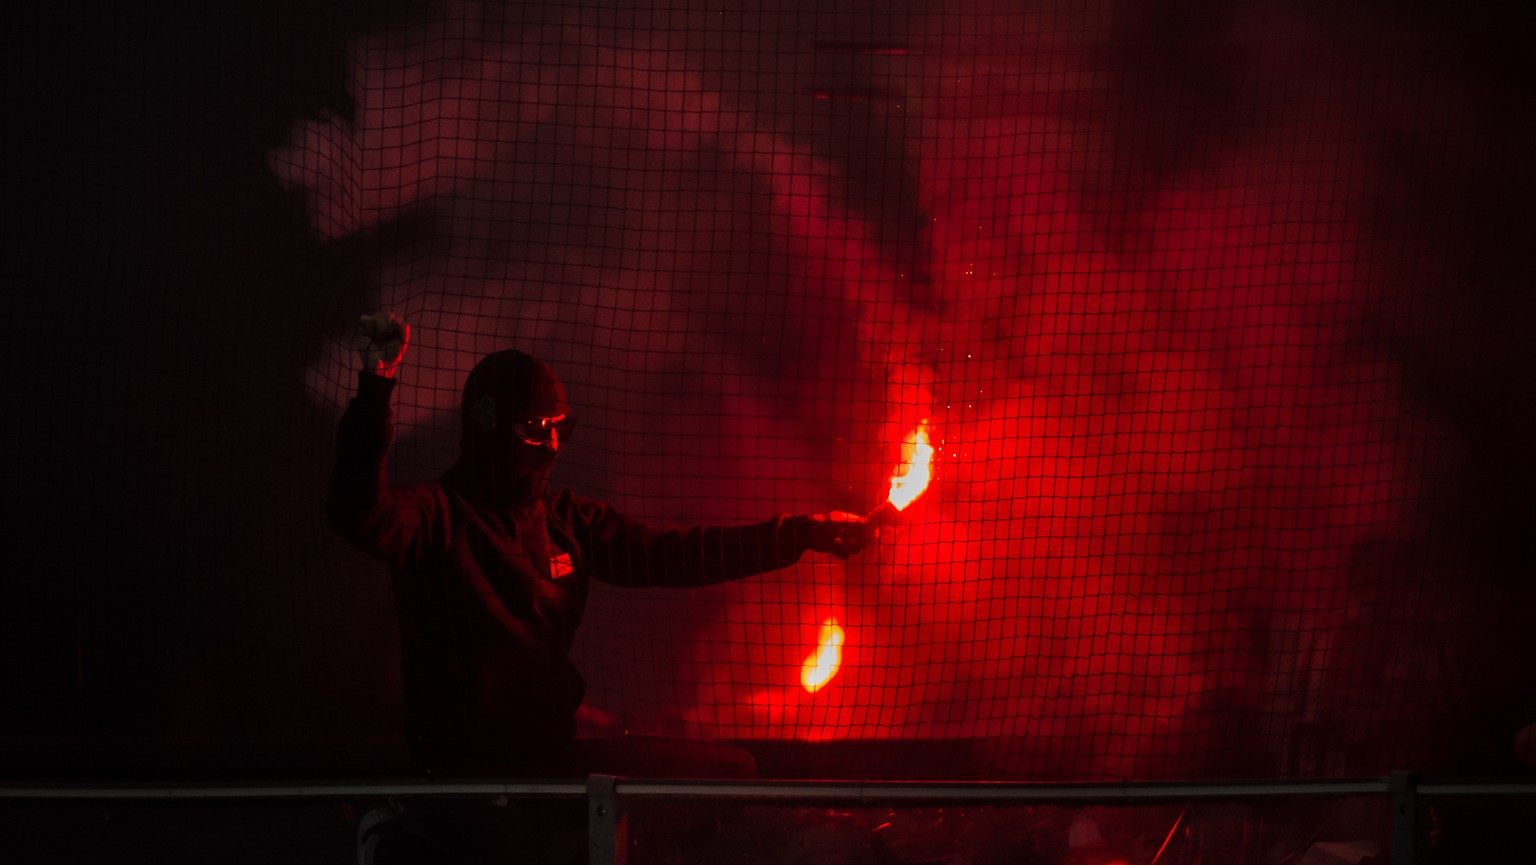 A fan of Lausanne with a flare during the preliminary round game of the National League between HC Ambri-Piotta and Lausanne HC, at the ice stadium Valascia in Ambri, on Sunday, January 14, 2018. (KEYSTONE/Ti-Press/Pablo Gianinazzi)